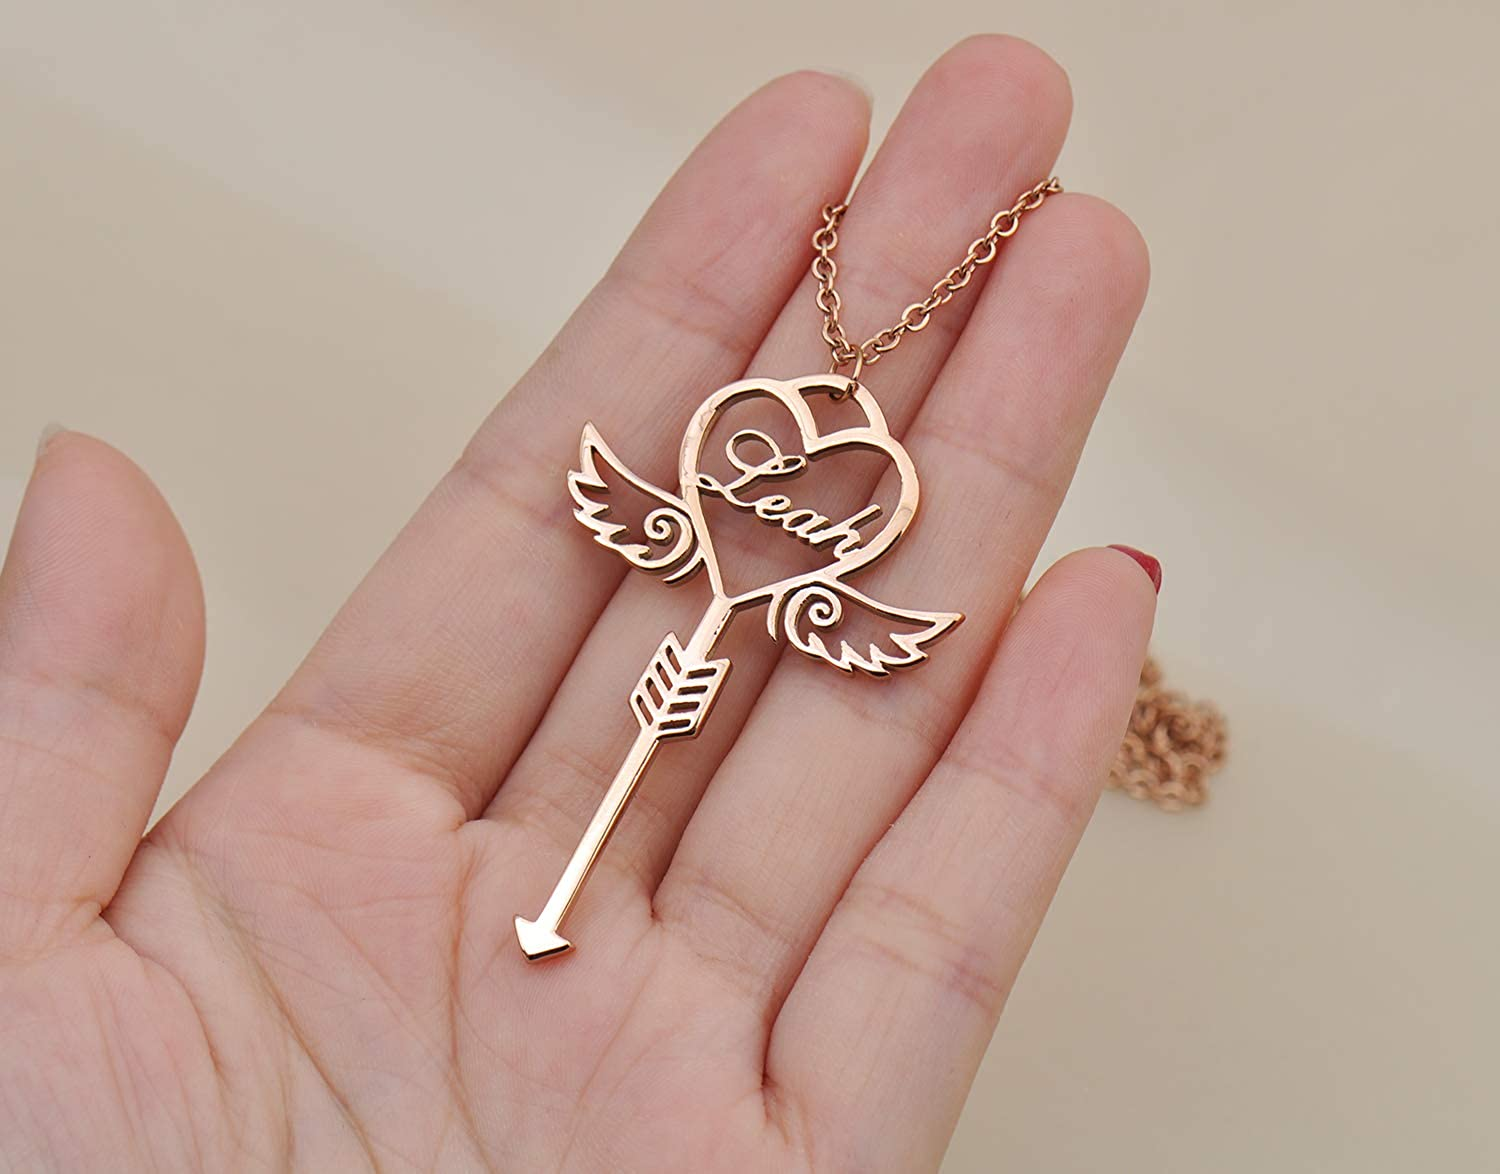 Love Wind Name Necklace Personalized Customized Initial Monogram Necklace Key Pendant Girls Jewelry